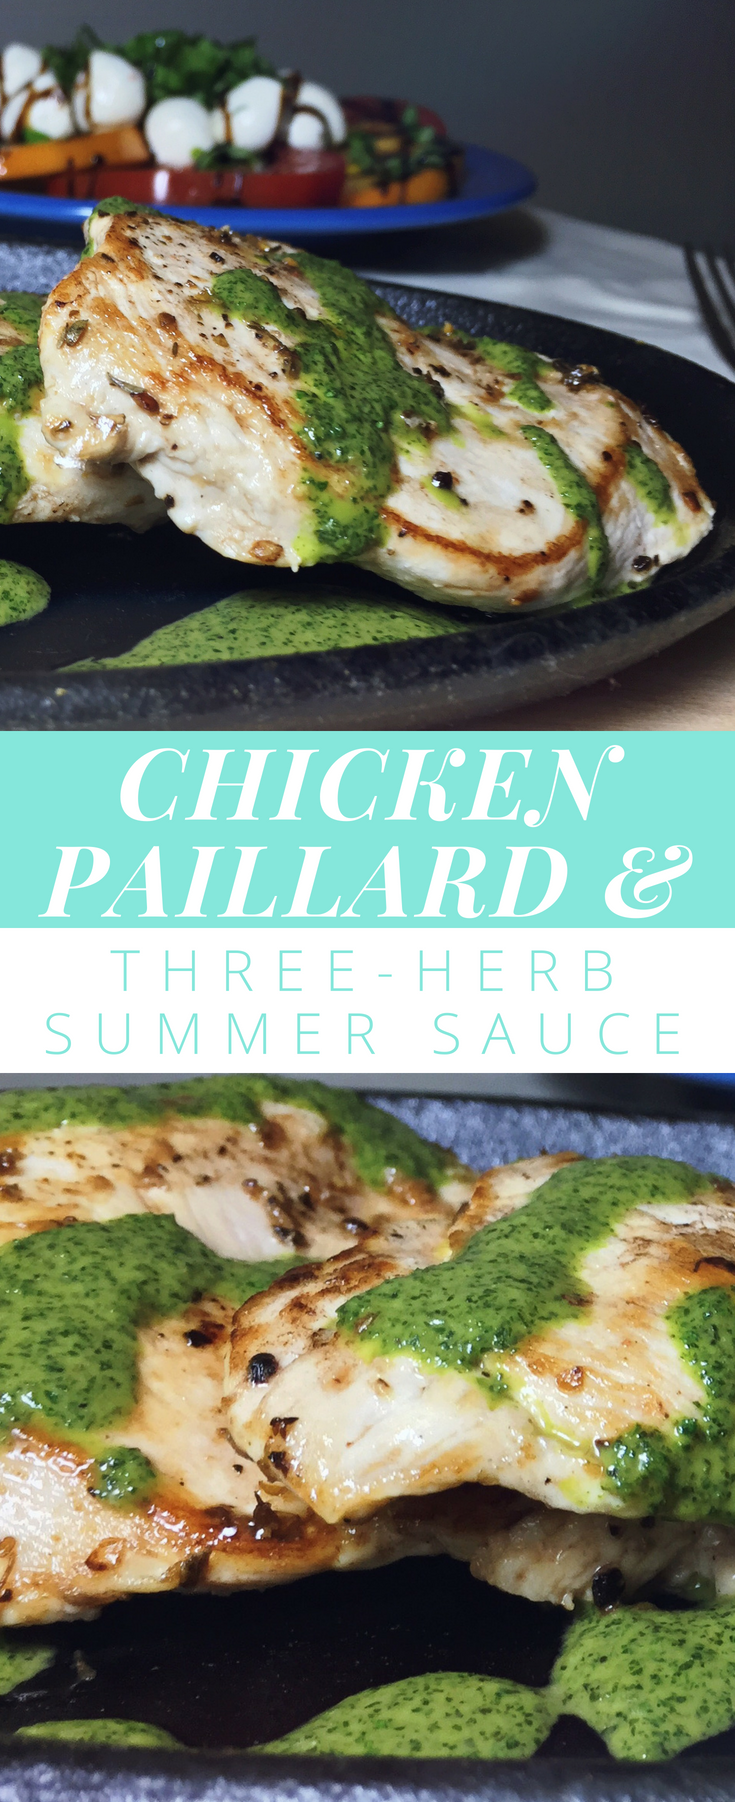 chicken-paillard-three-herb-summer-sauce-pin.png